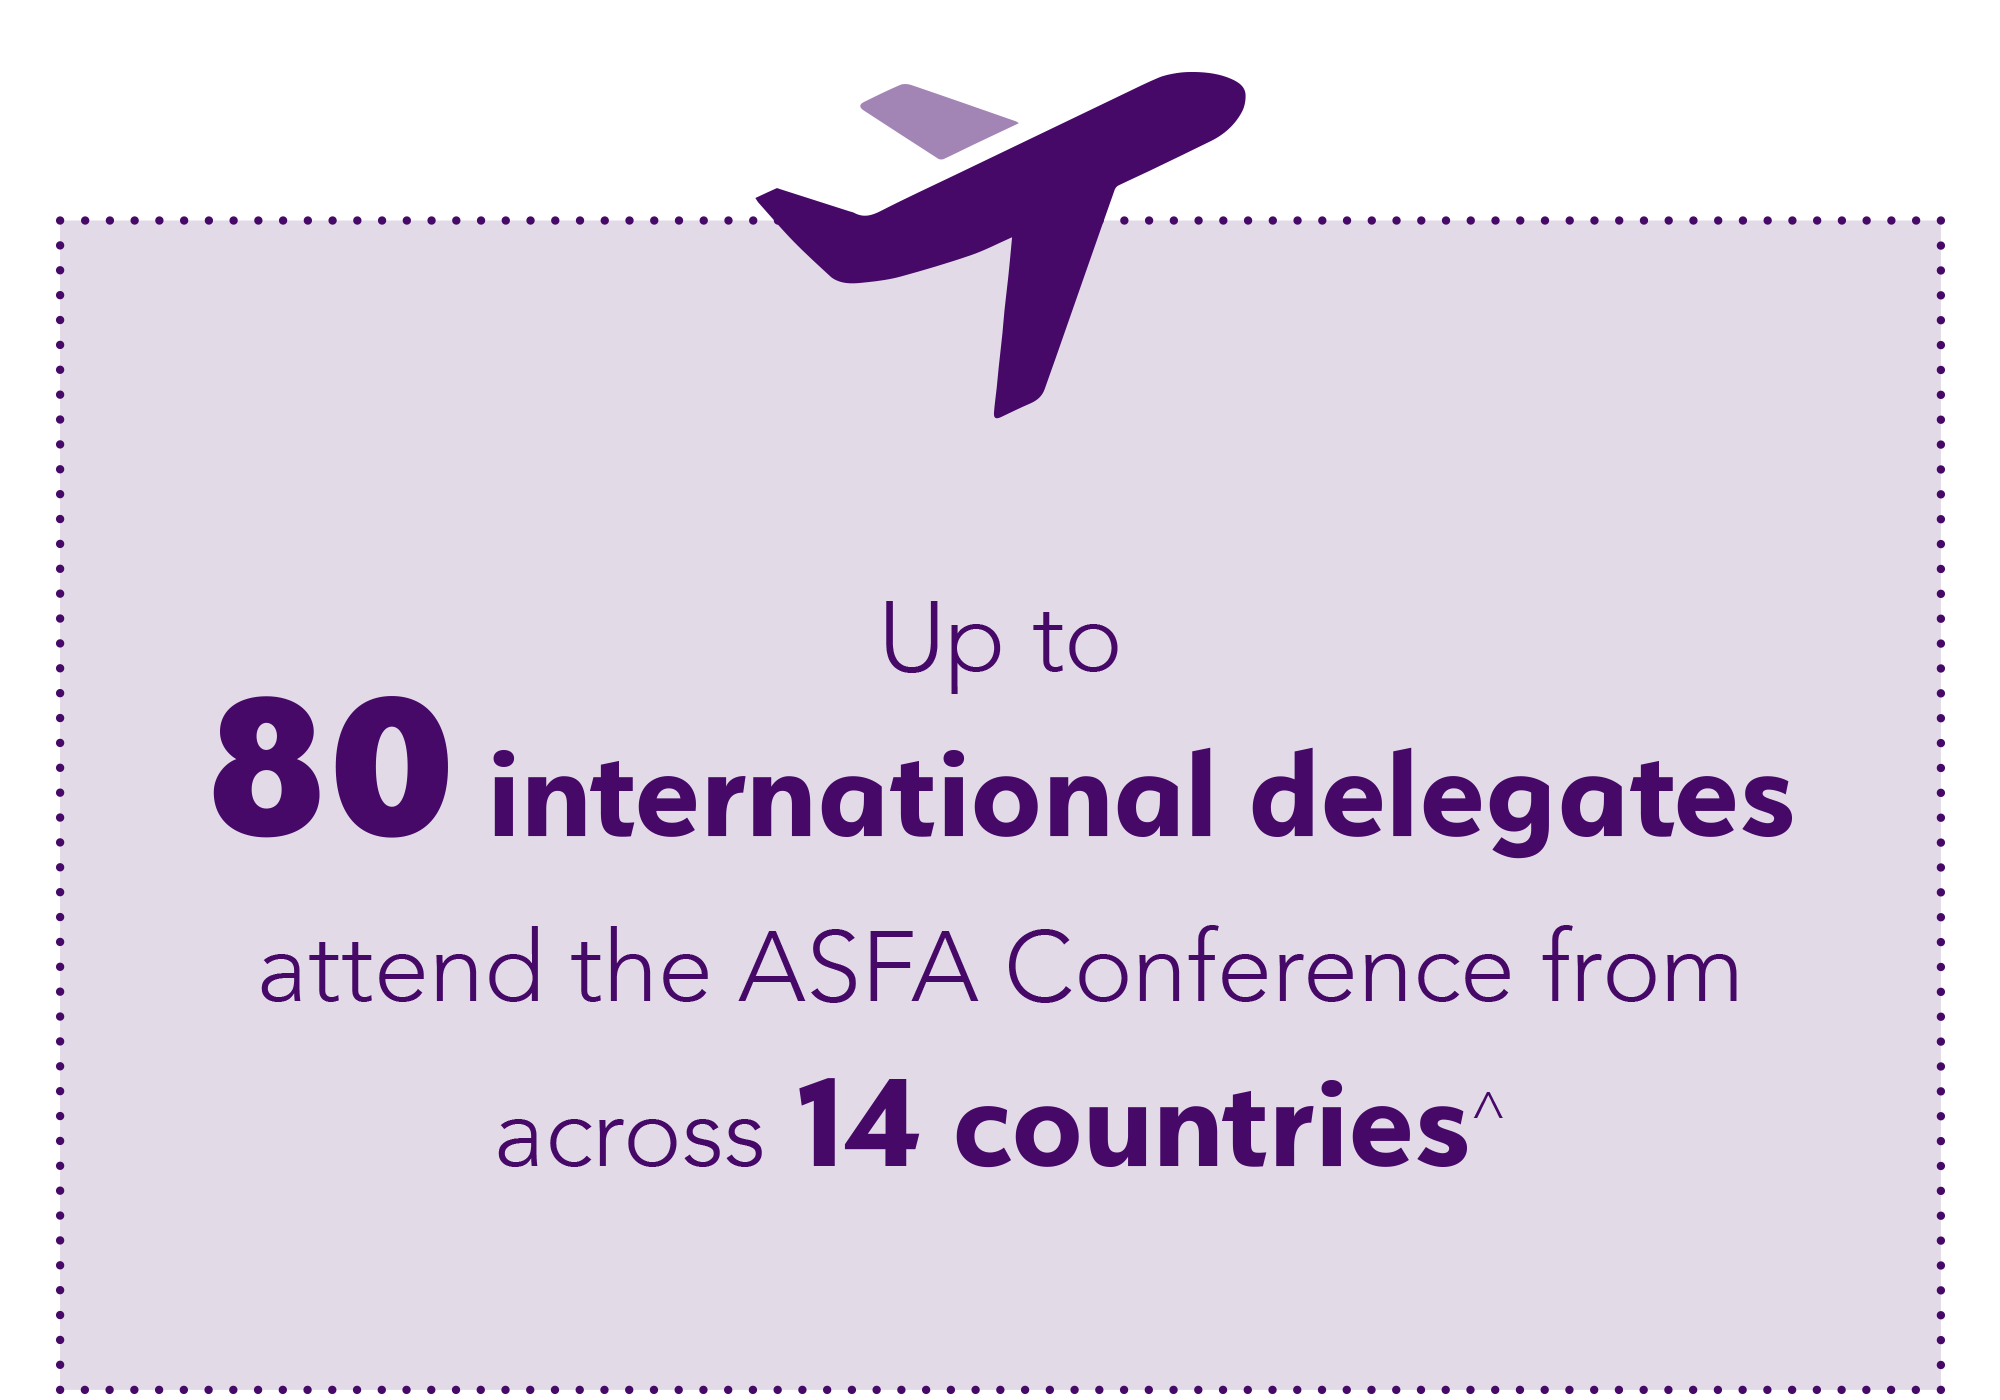 Over 95% of ASFA Conference delegates agress the conference met or exceeded their expectations